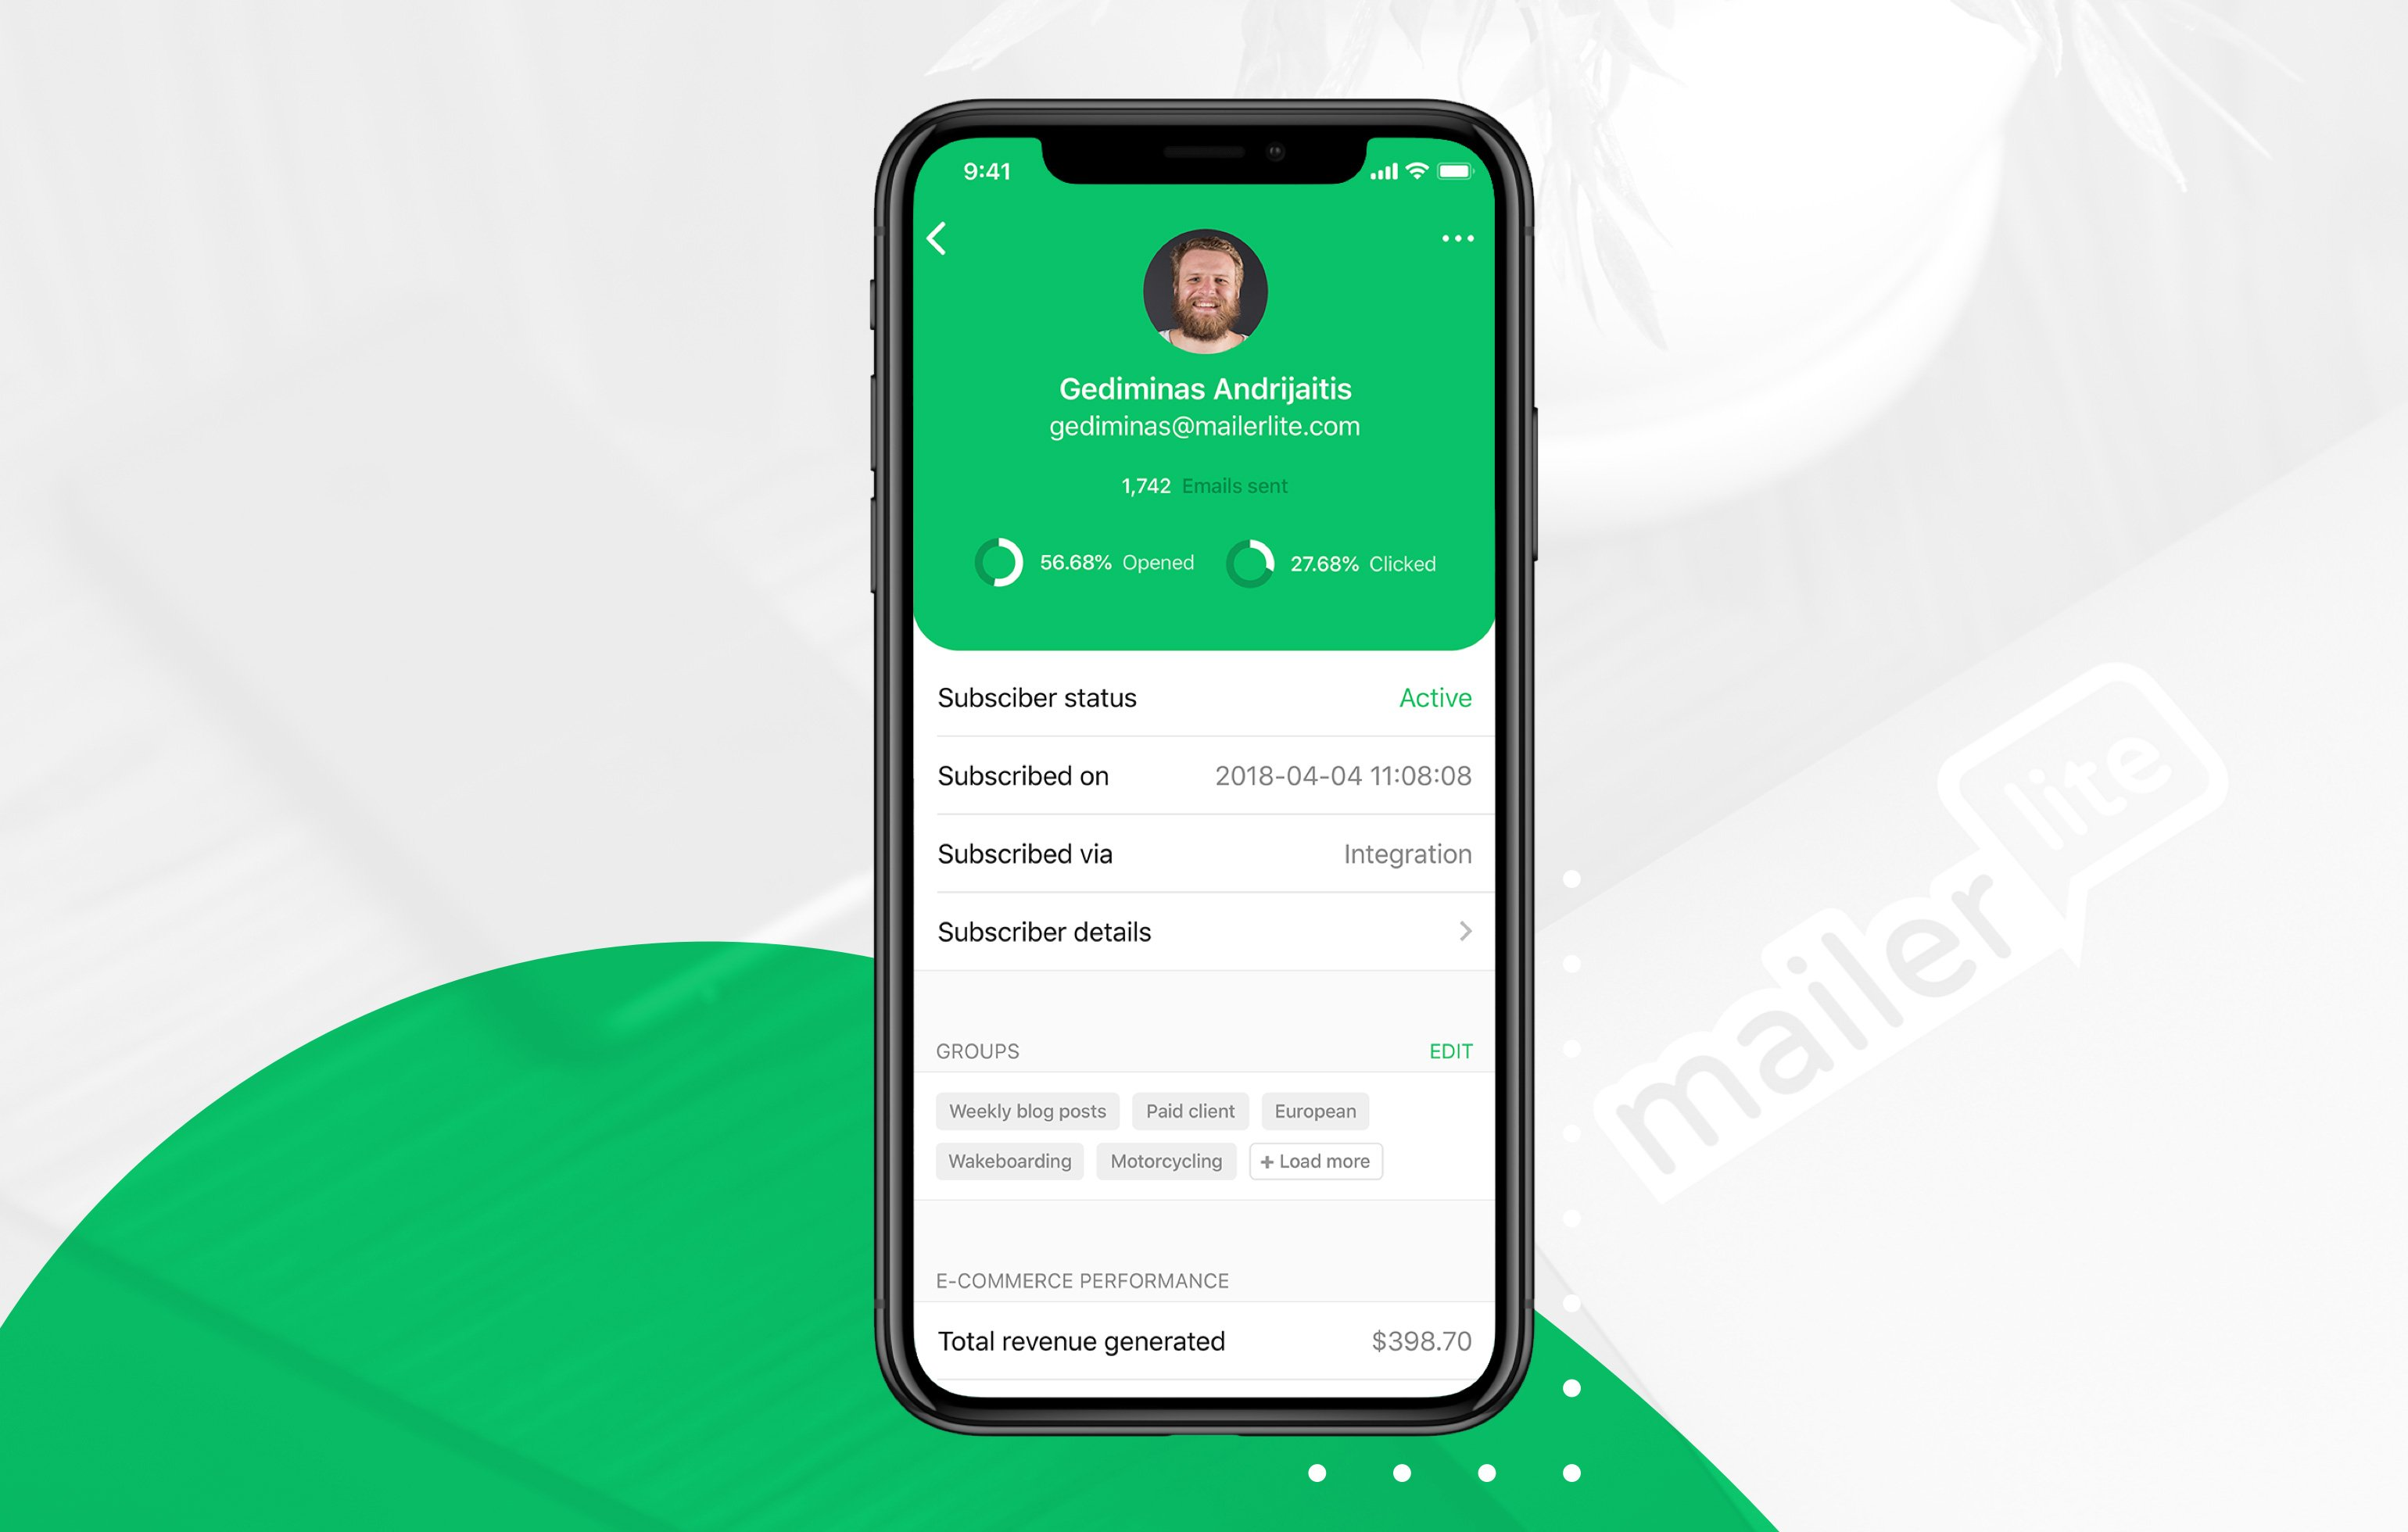 mailerlite iphone app - subscribers